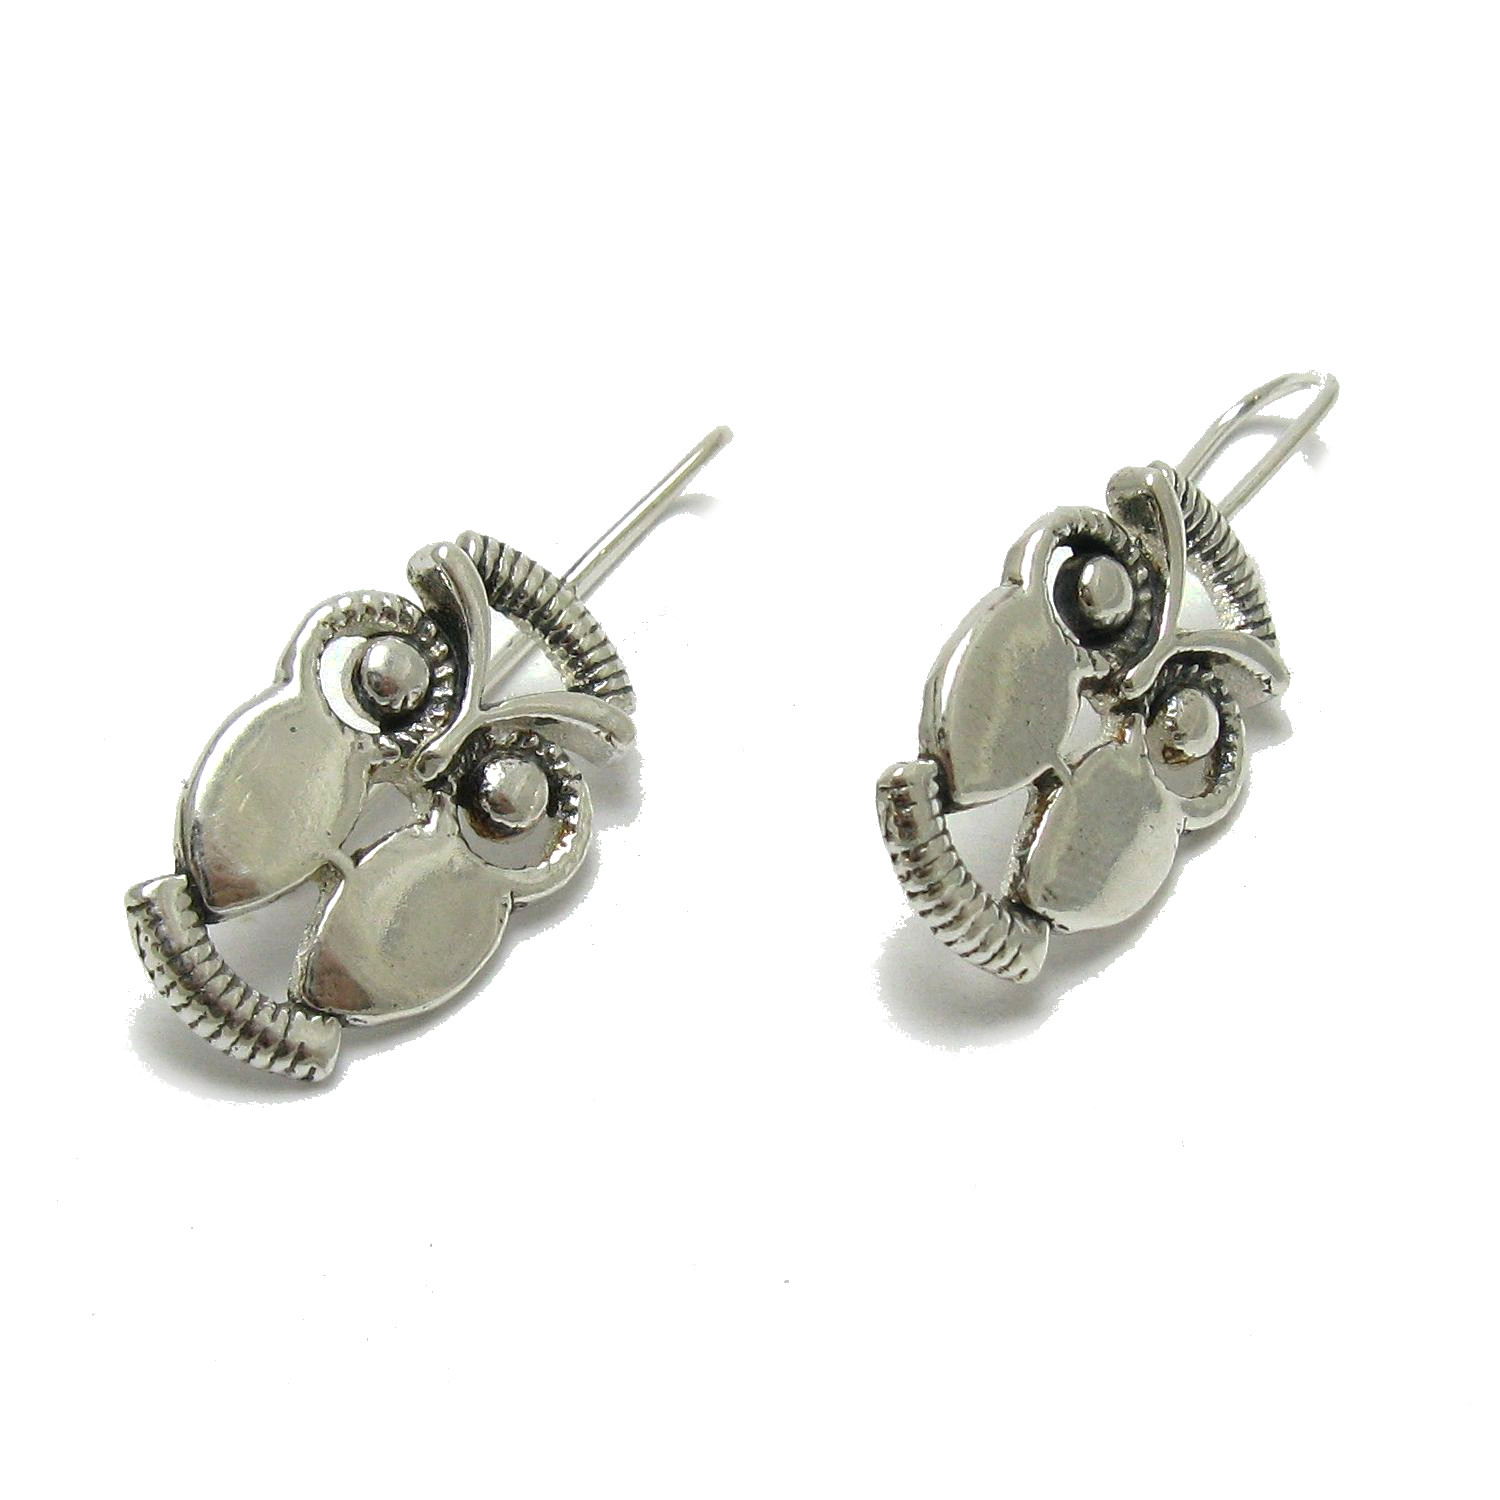 Silver earrings - E000723